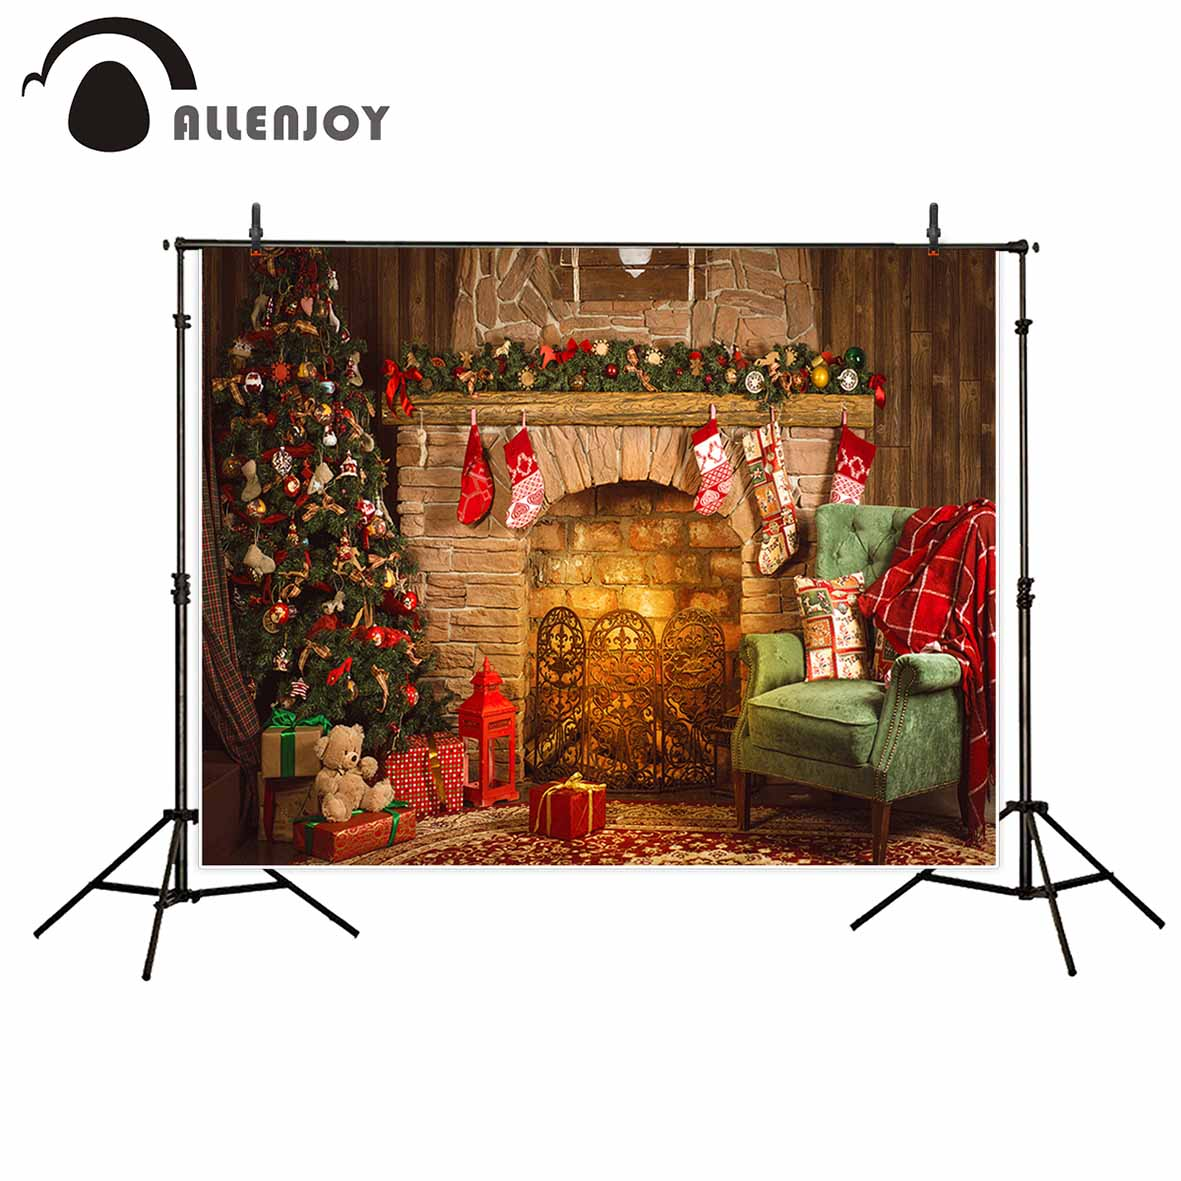 Allenjoy backgrounds for photo studio Christmas fireplace tree chair bear backdrop camera photography professional цена